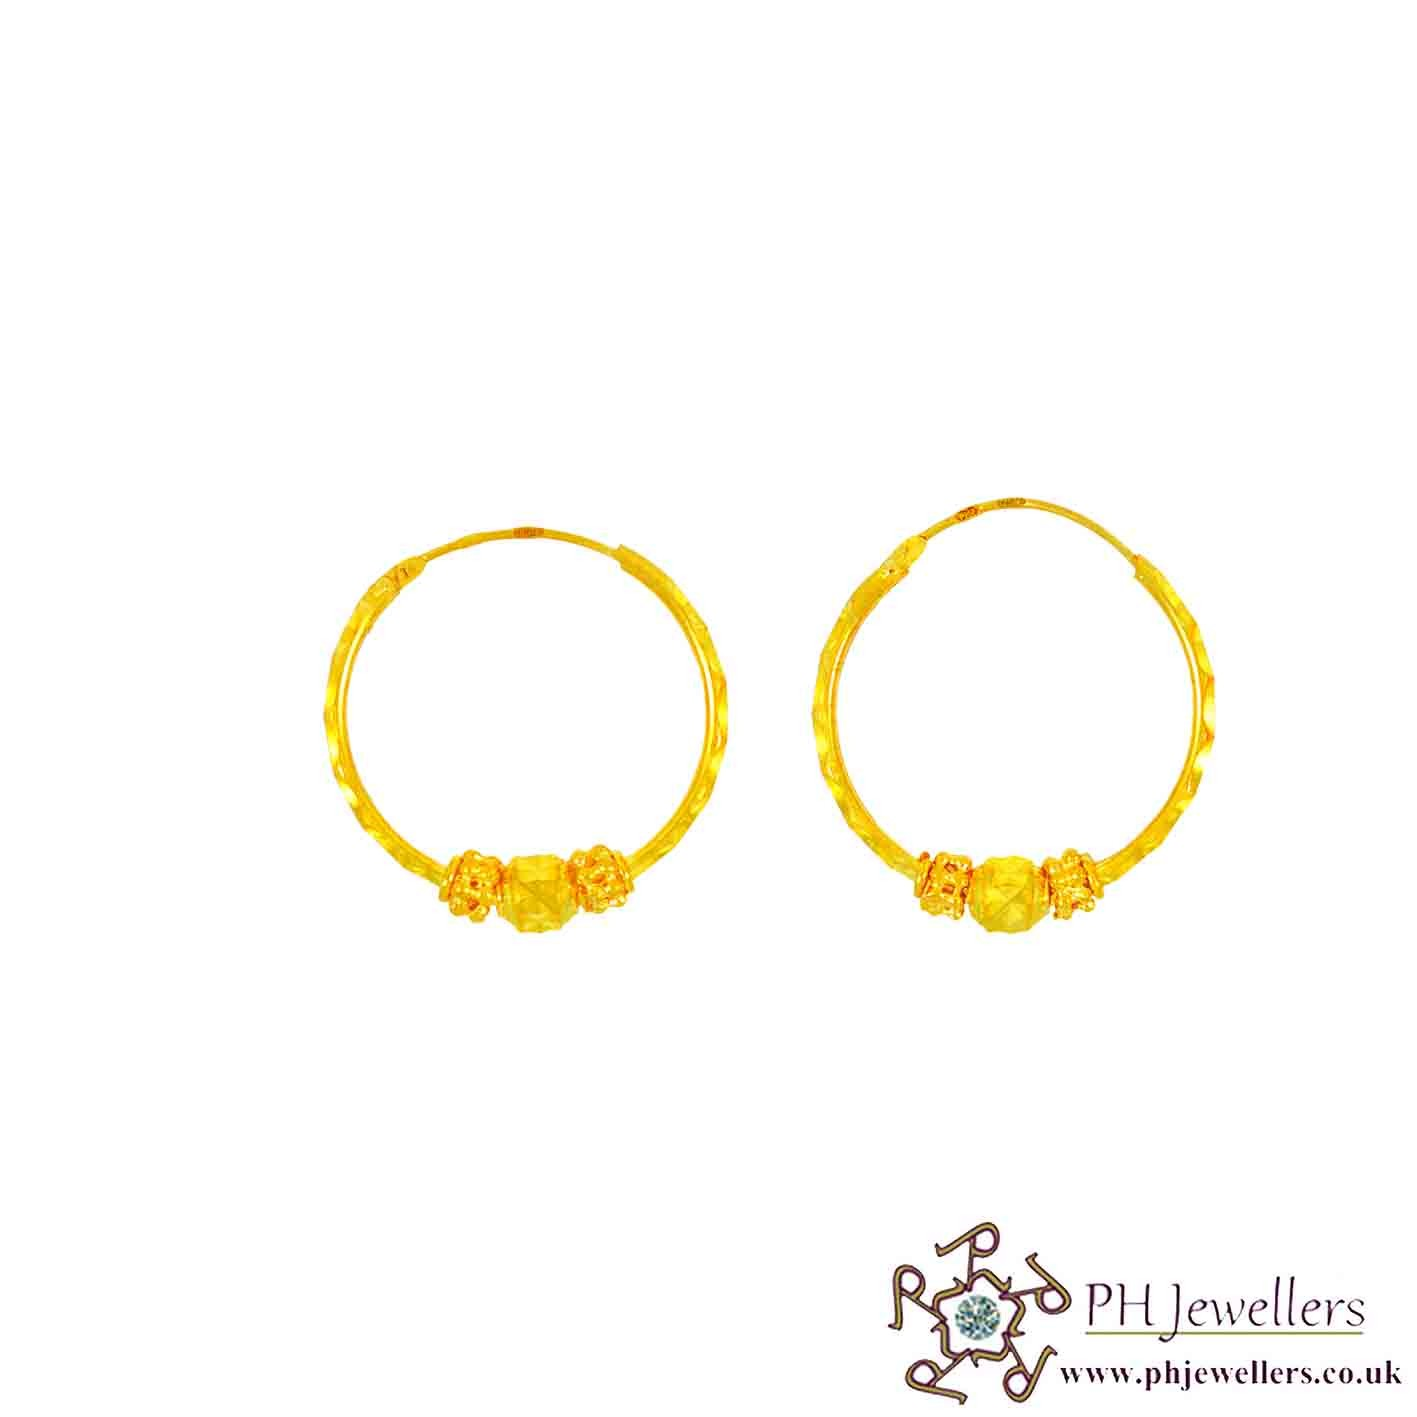 22ct 916 Hallmark Yellow Gold Bali Earrings BE12